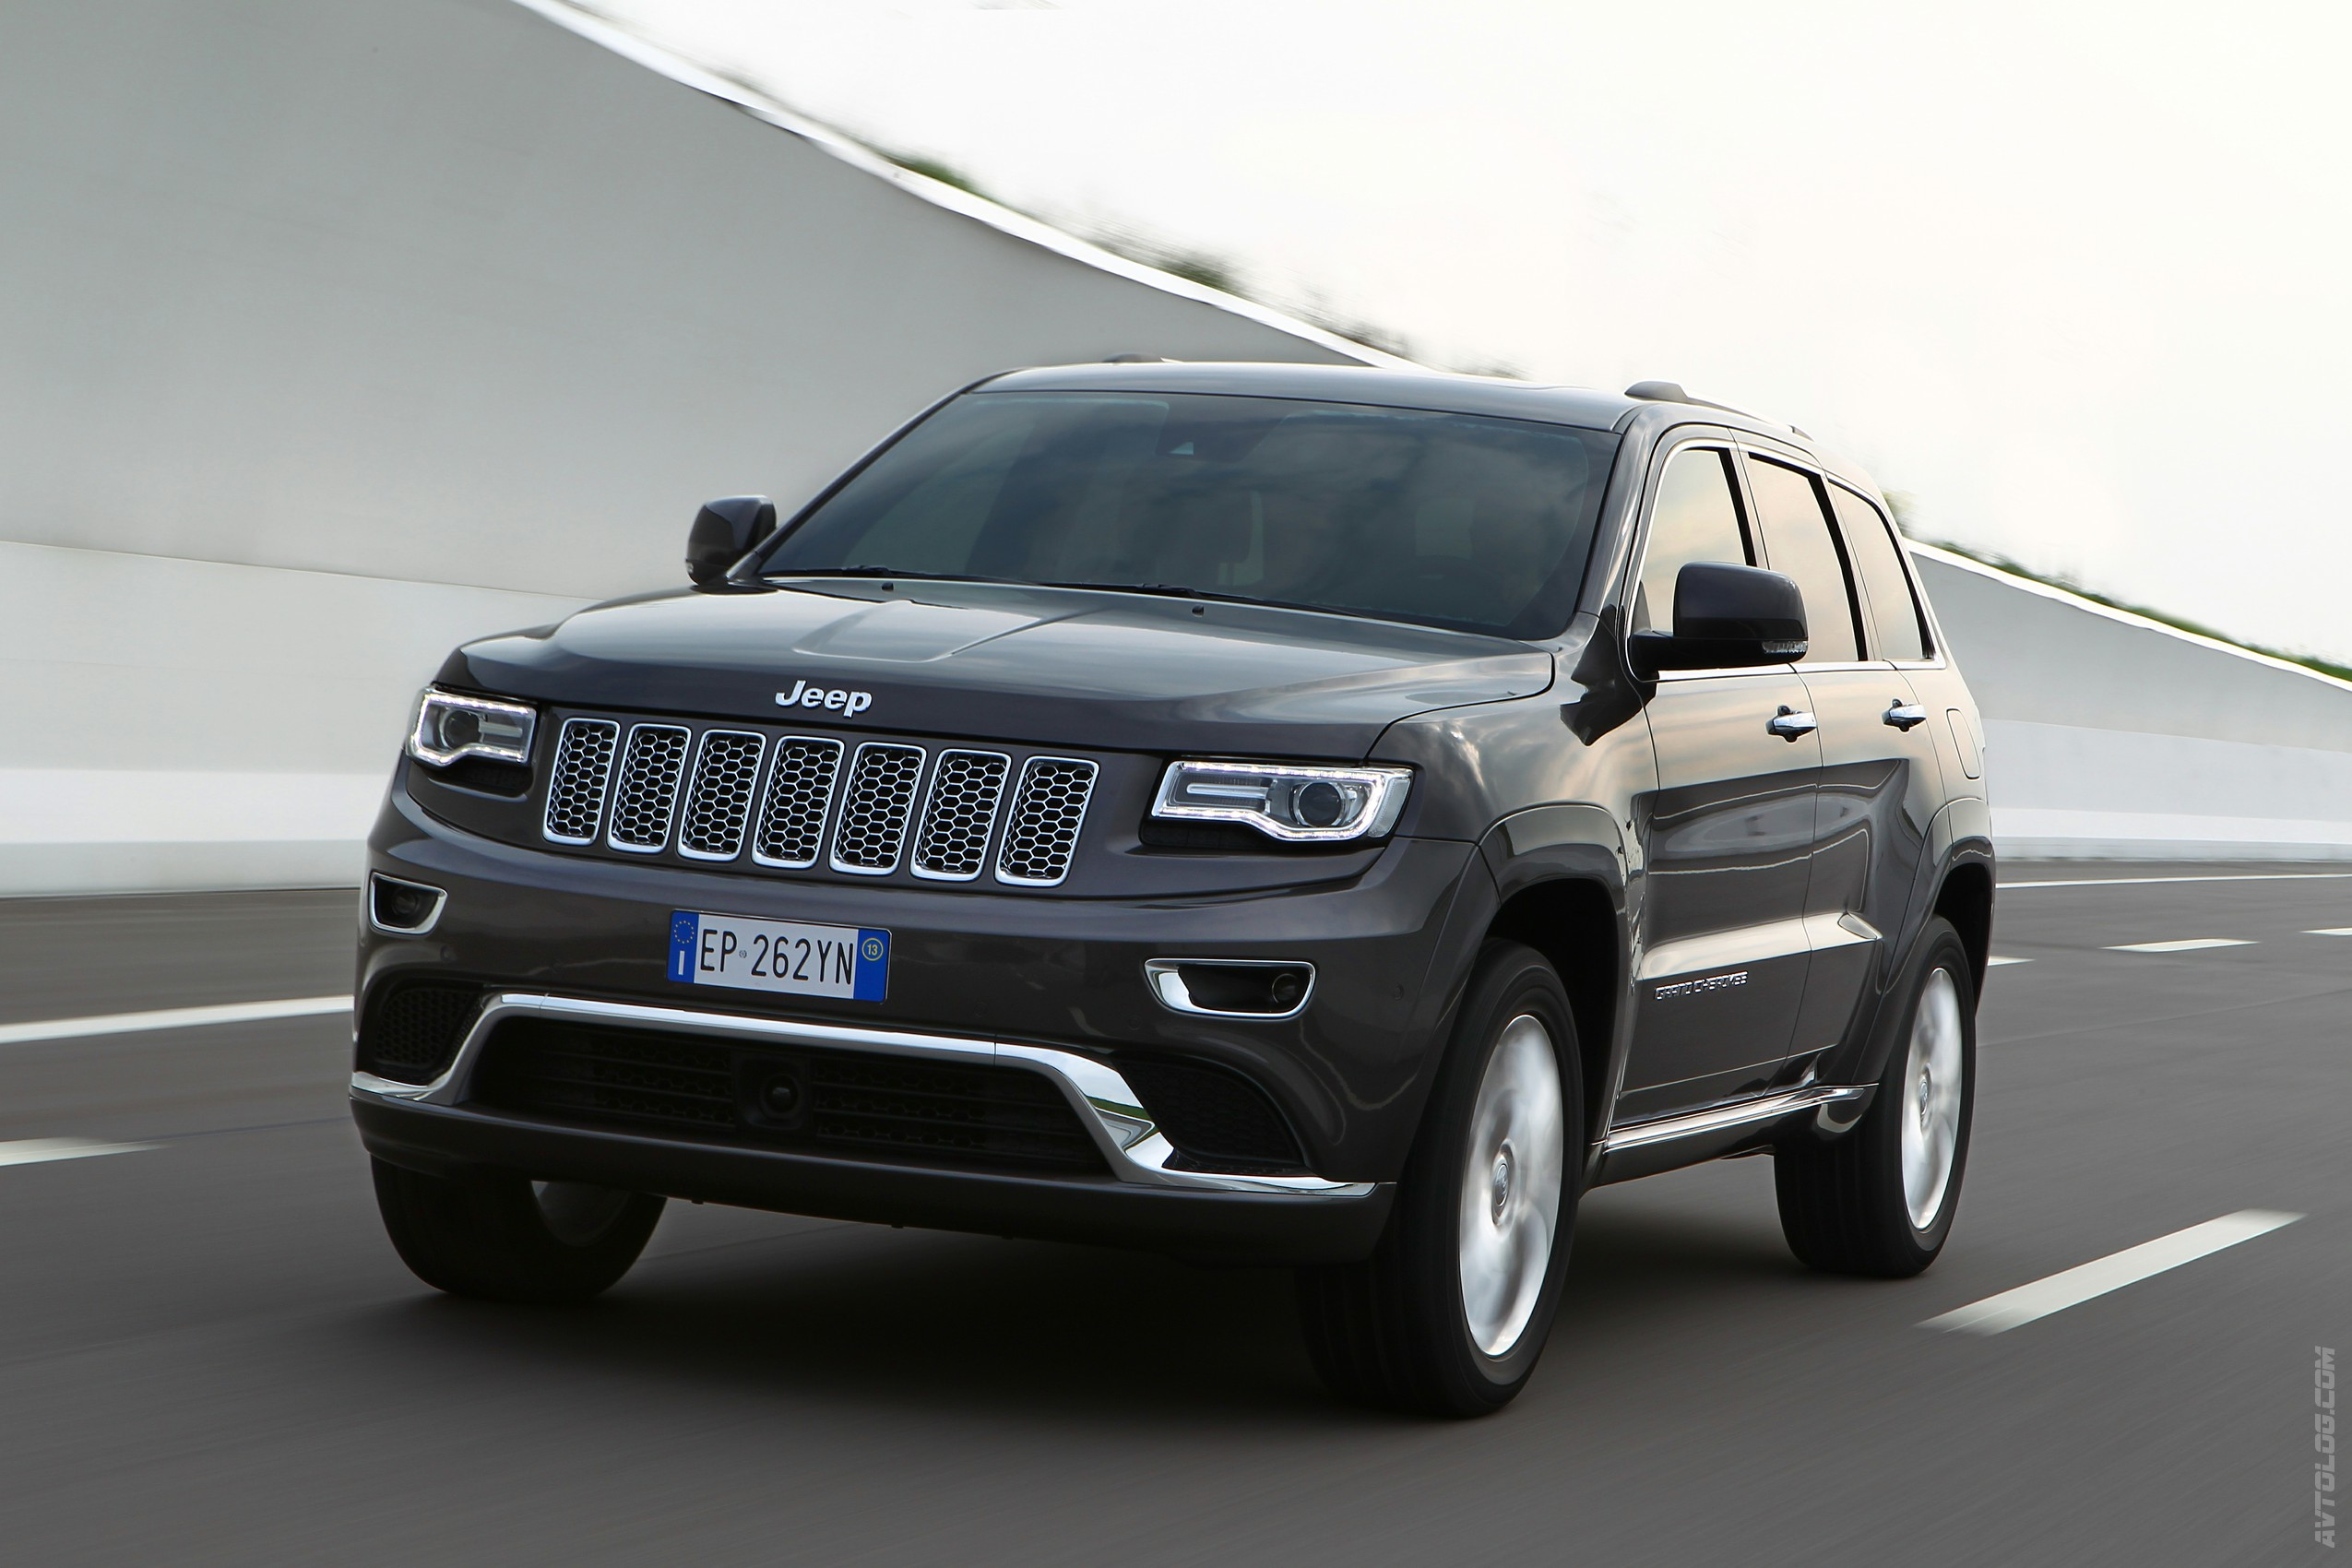 2018 Jeep Grand Cherokee EU Version photo - 2